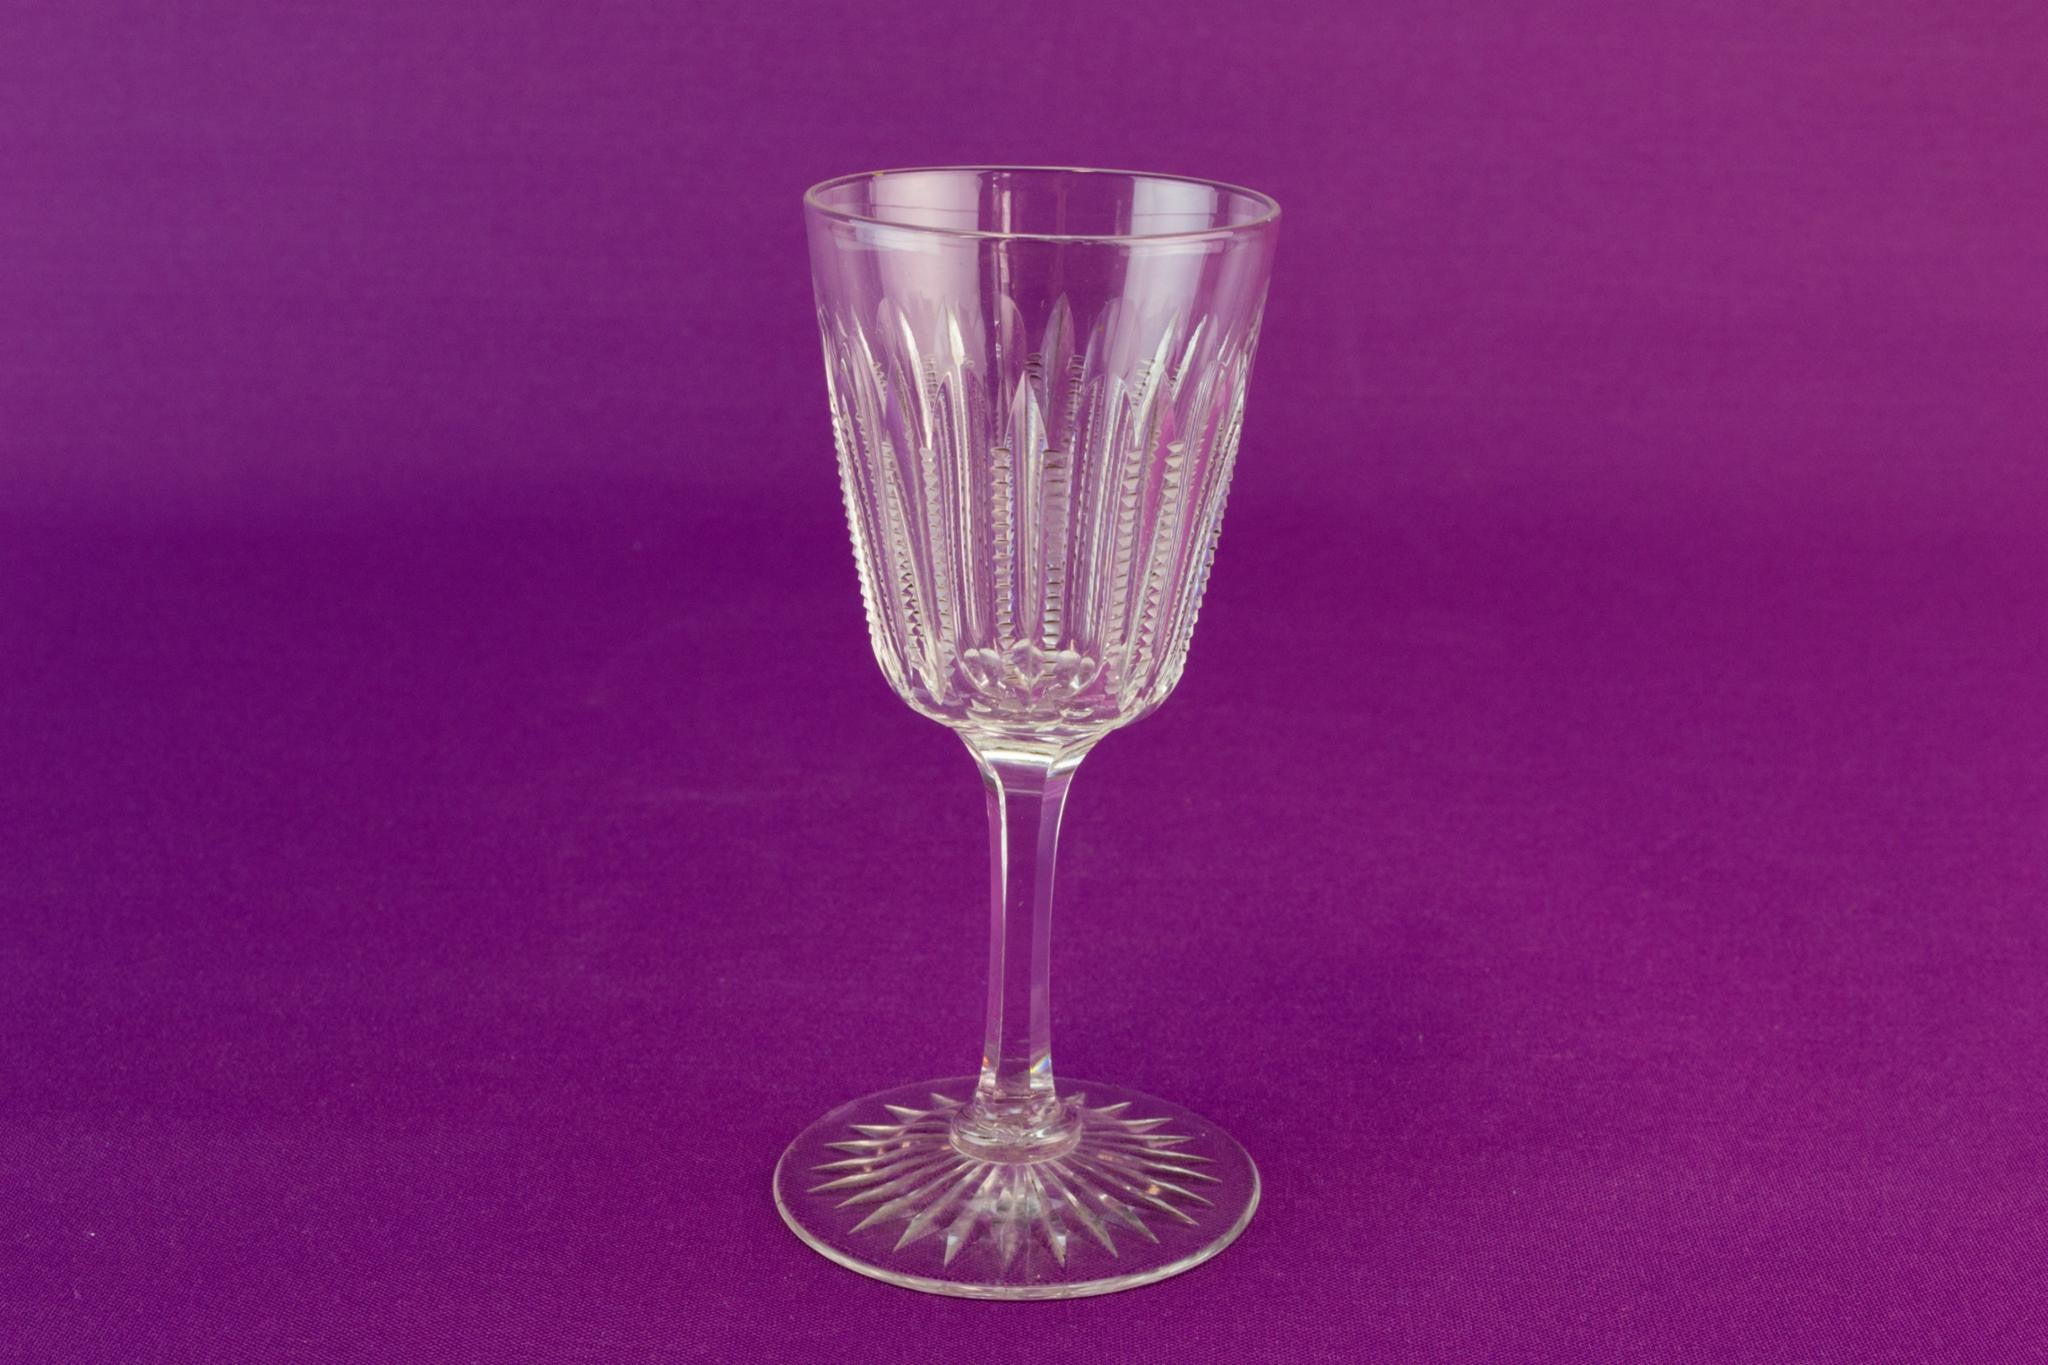 6 ripple cut port glasses, circa 1910